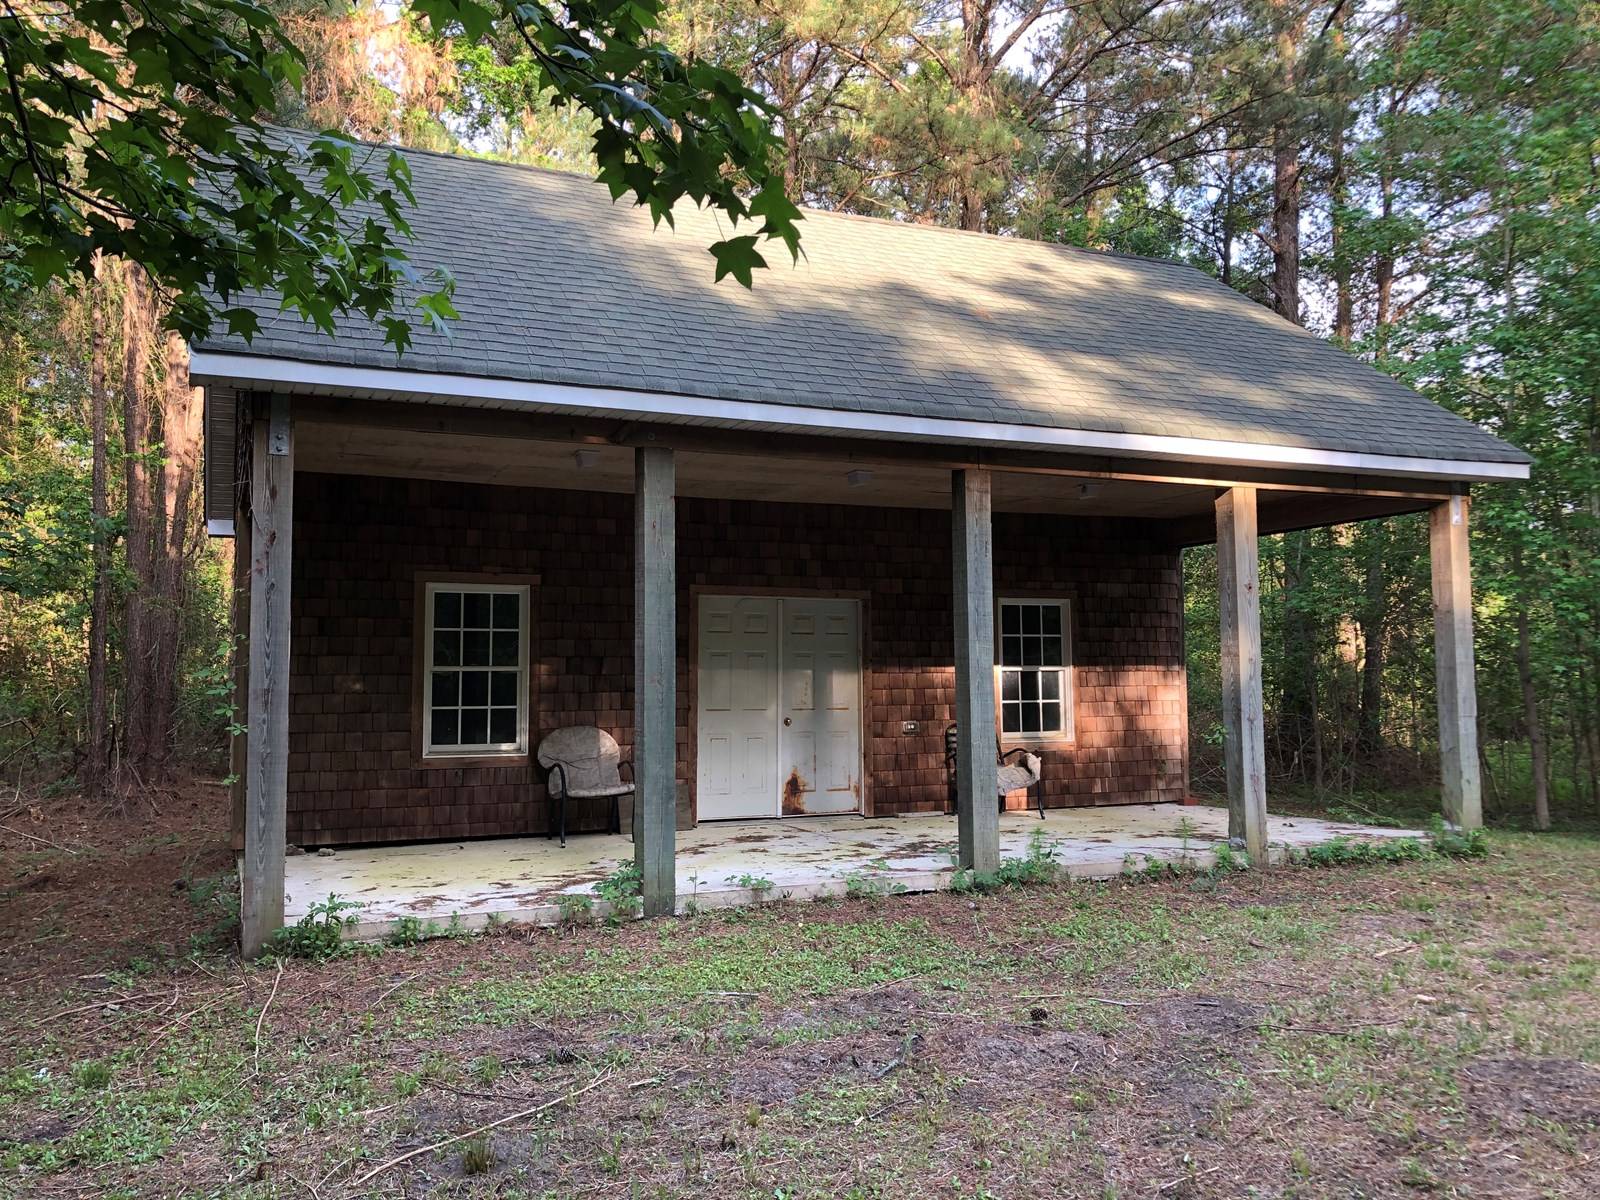 Land for sale in Hyde County, NC/Belhaven